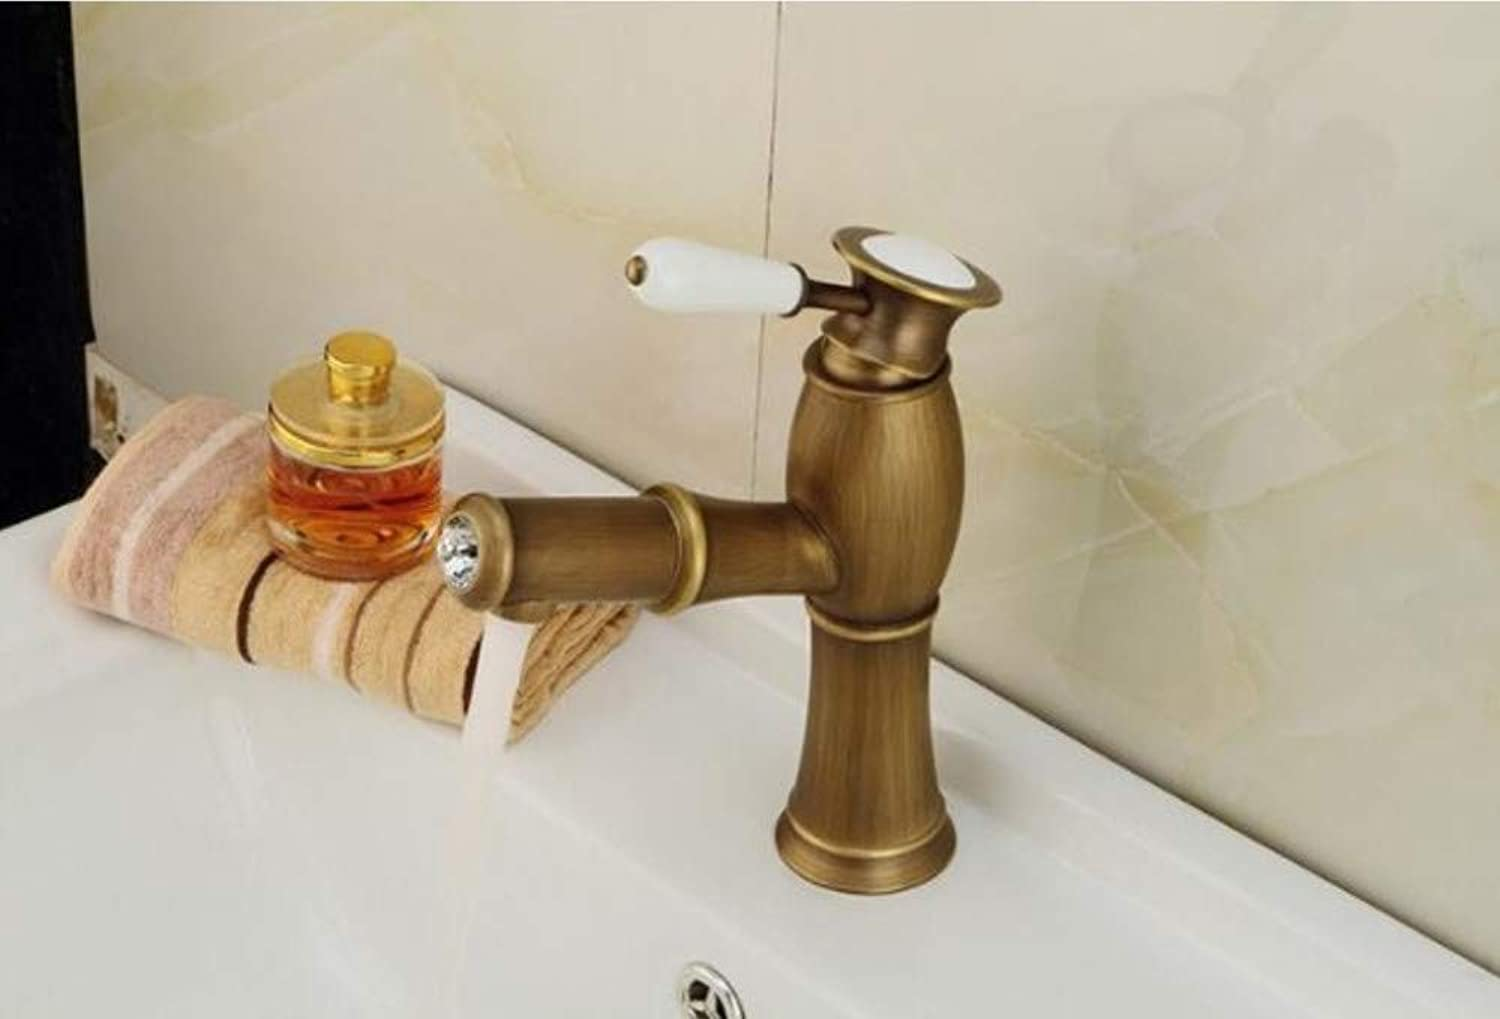 Xiehao New Antique golden Brass Bathroom & Kitchen Pull Out Faucets Hot and Cold Water Basin Taps Single Handle Sink Tap Faucet